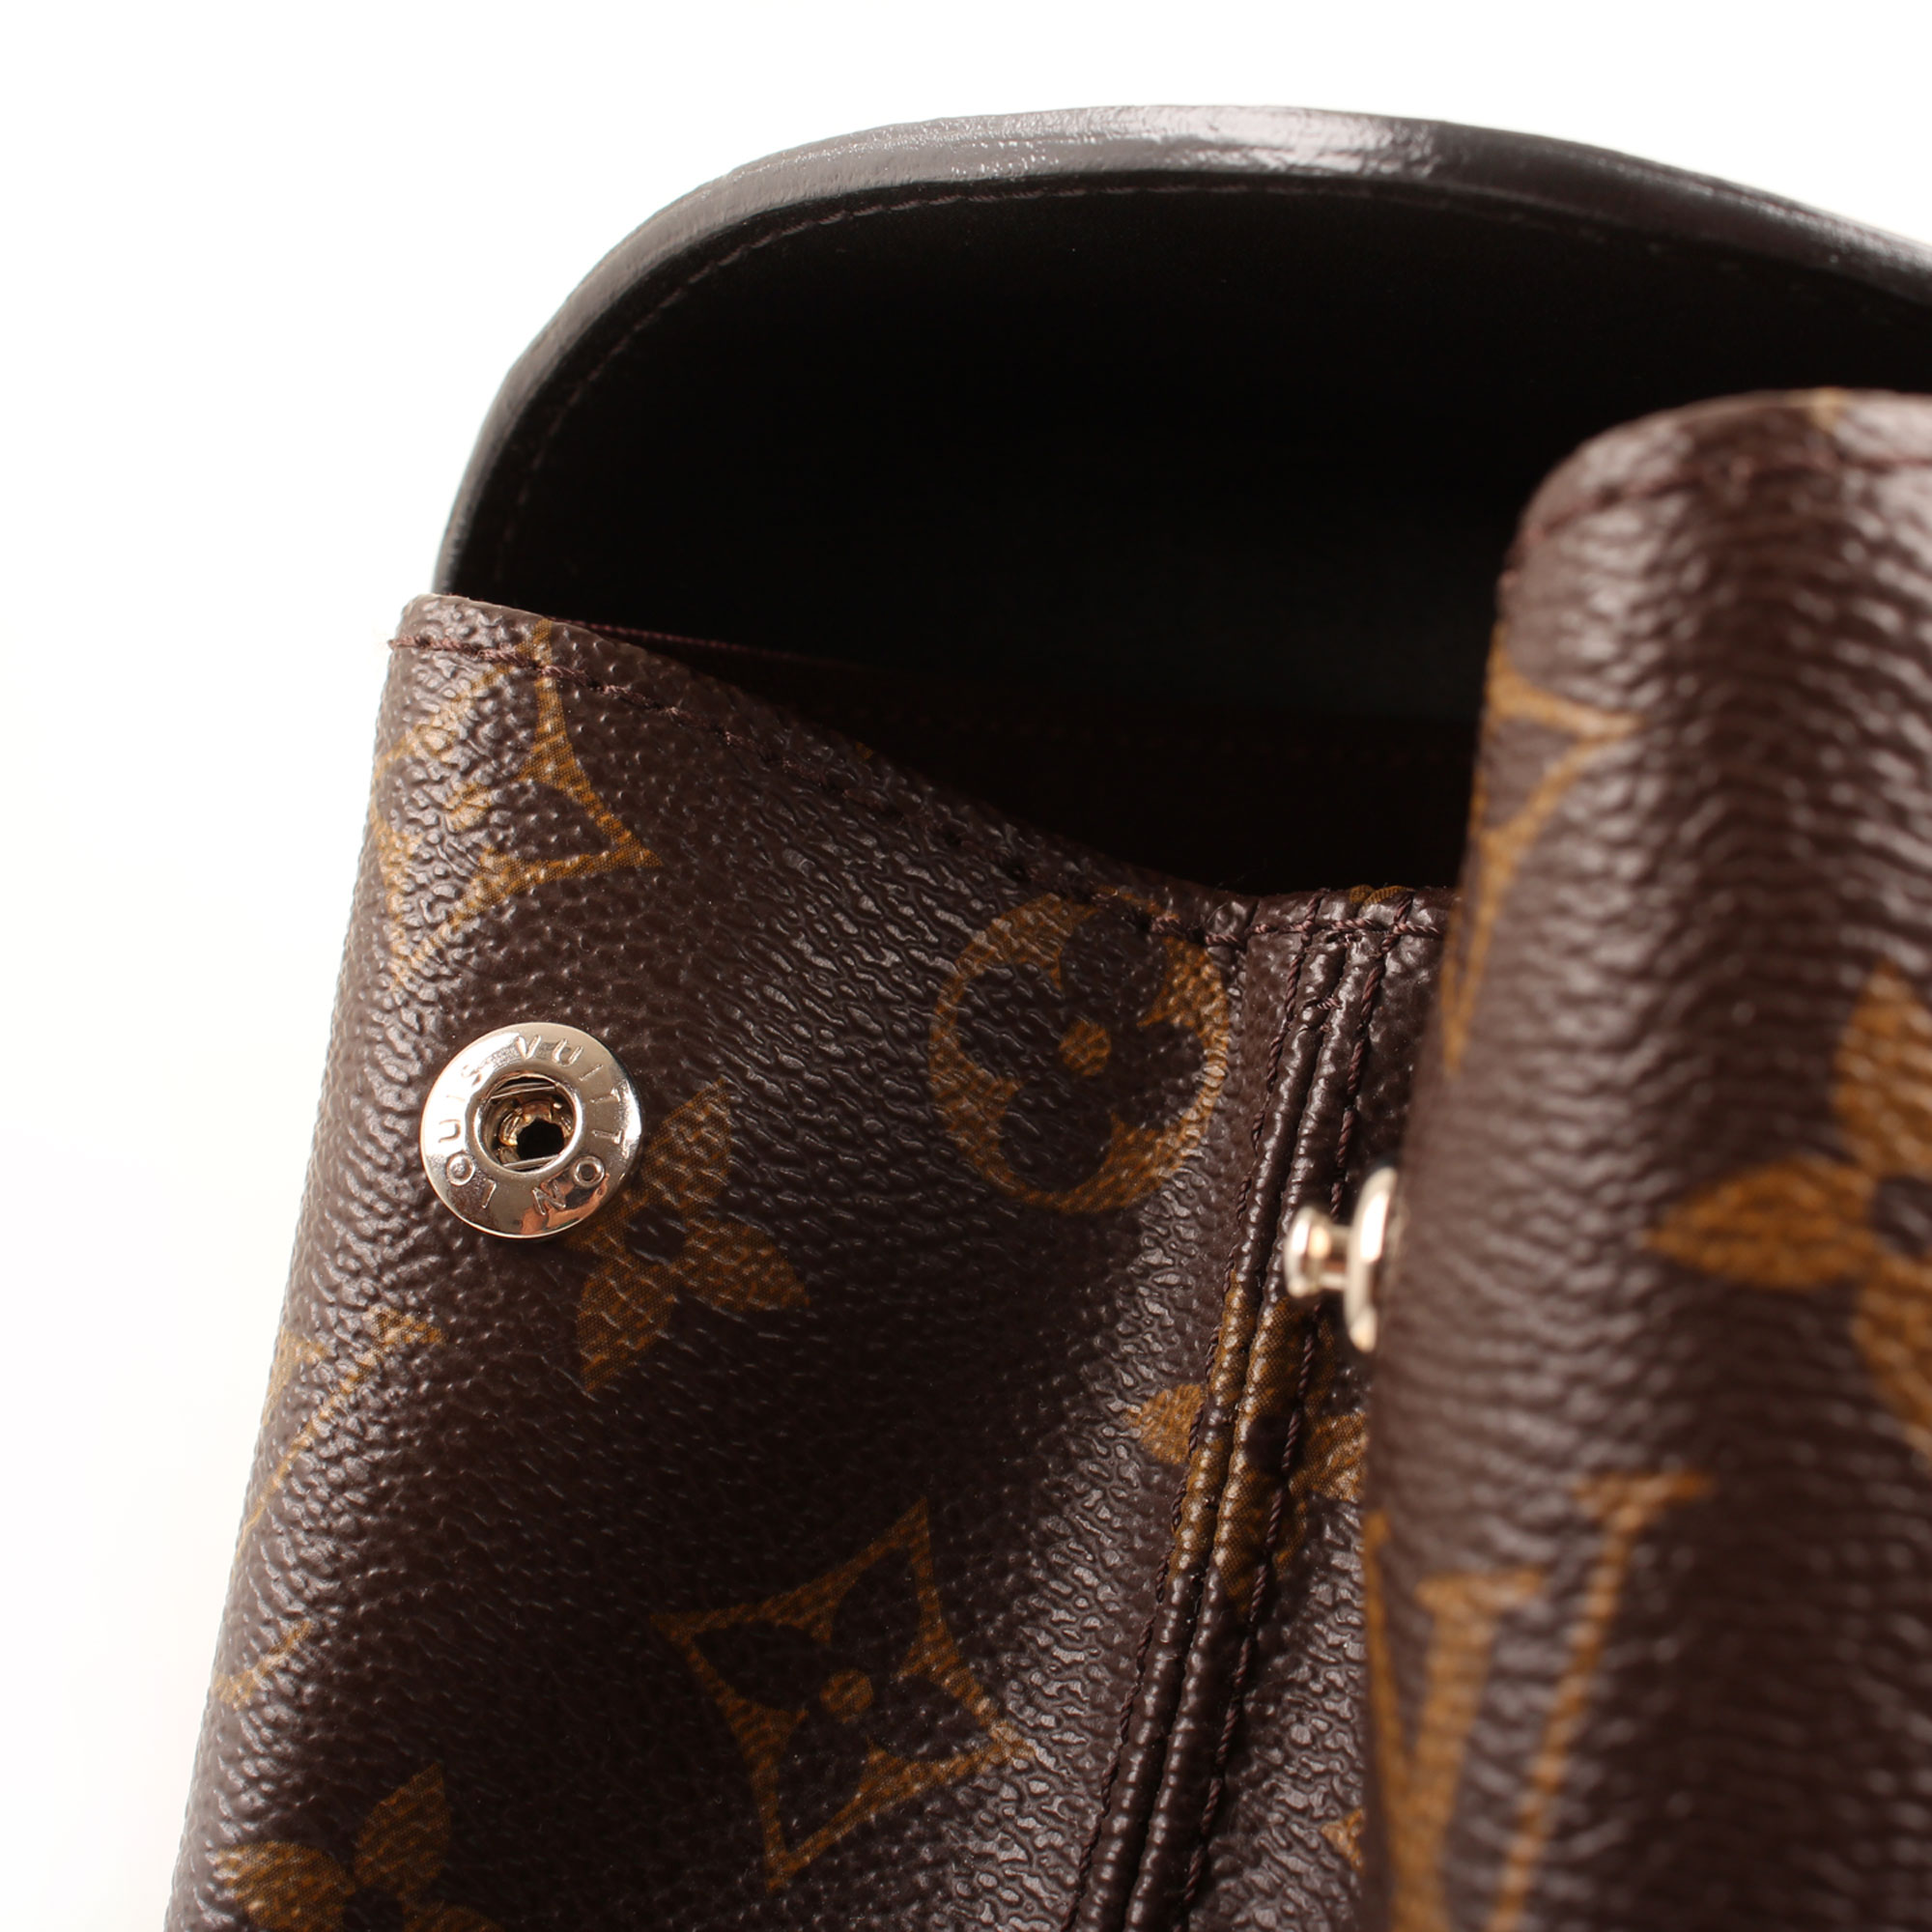 Clasp detail image of louis vuitton palk monogram macassar backpack leather